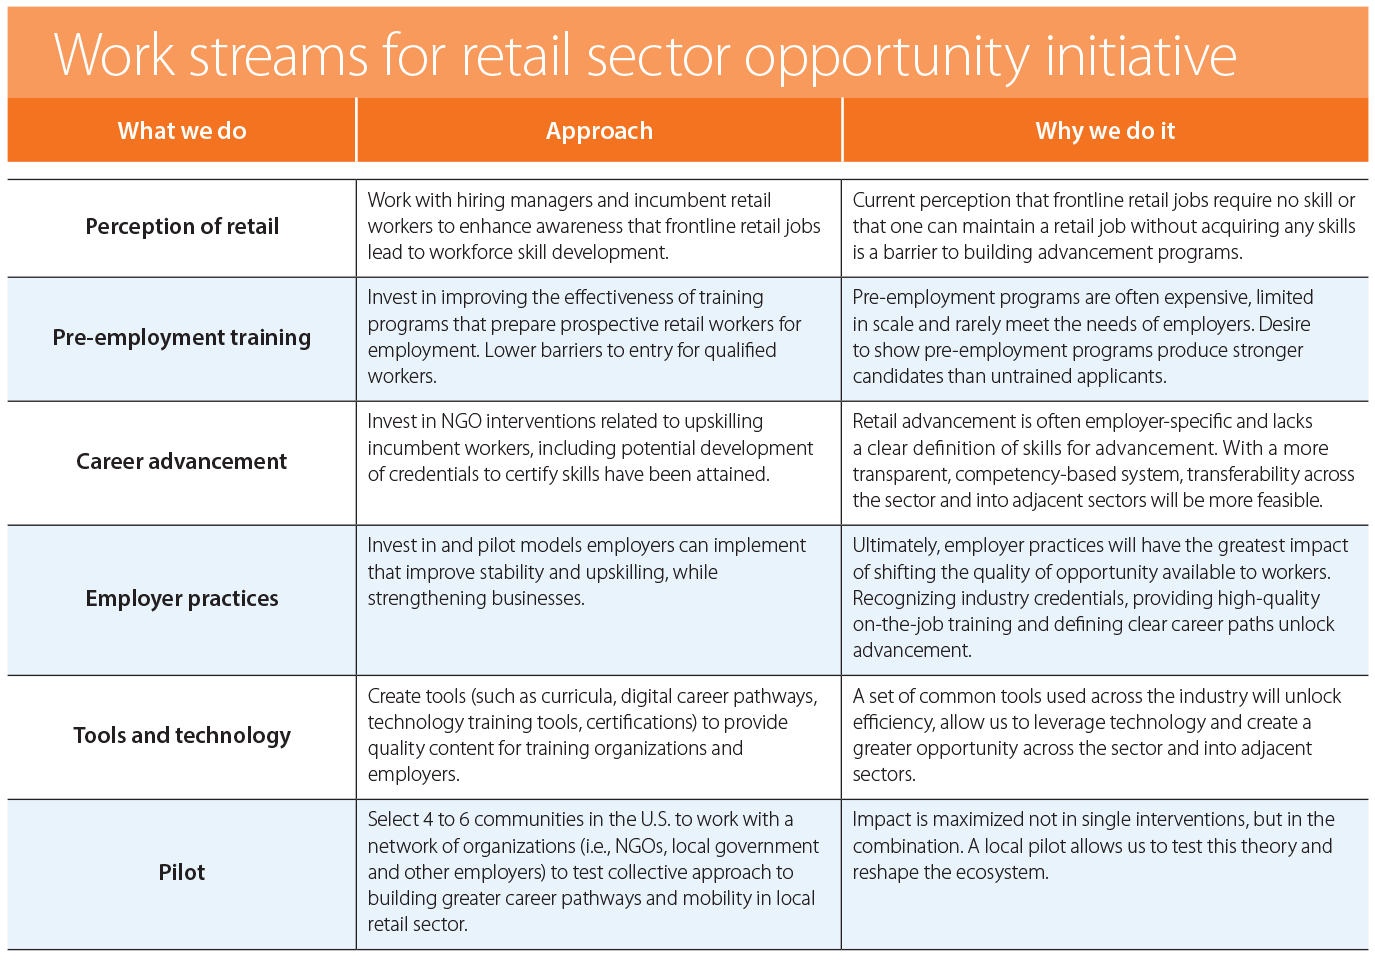 Work streams for retail sector opportunity initiative